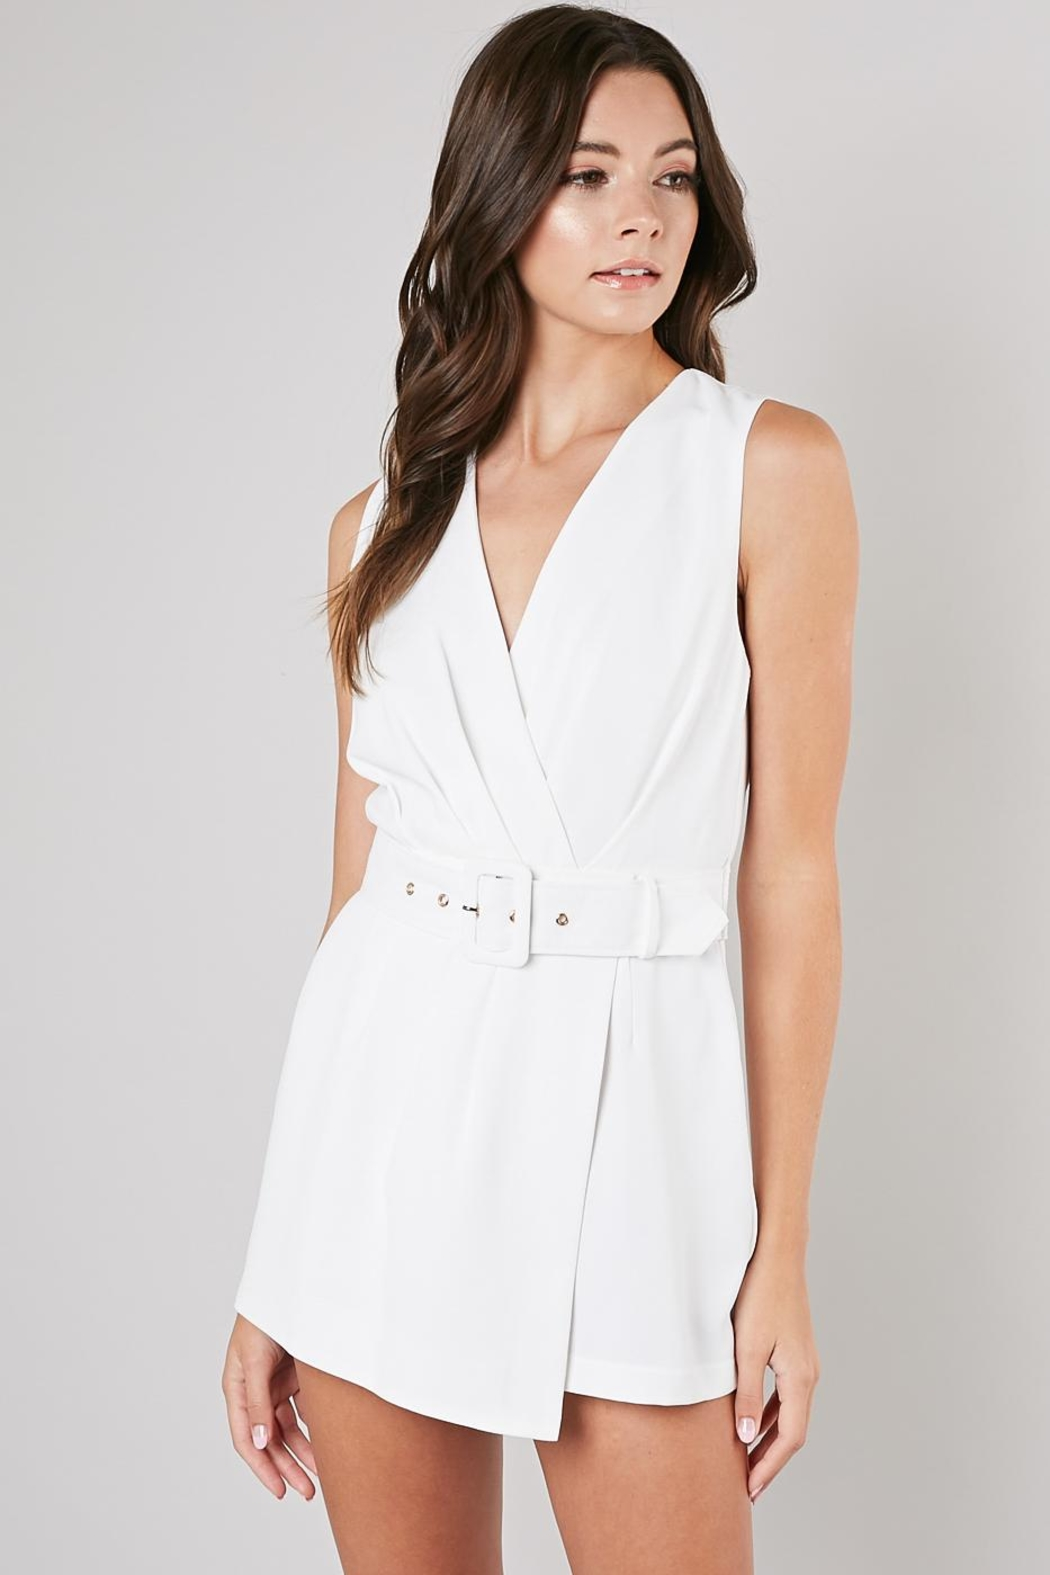 Do & Be White Belted Romper - Main Image